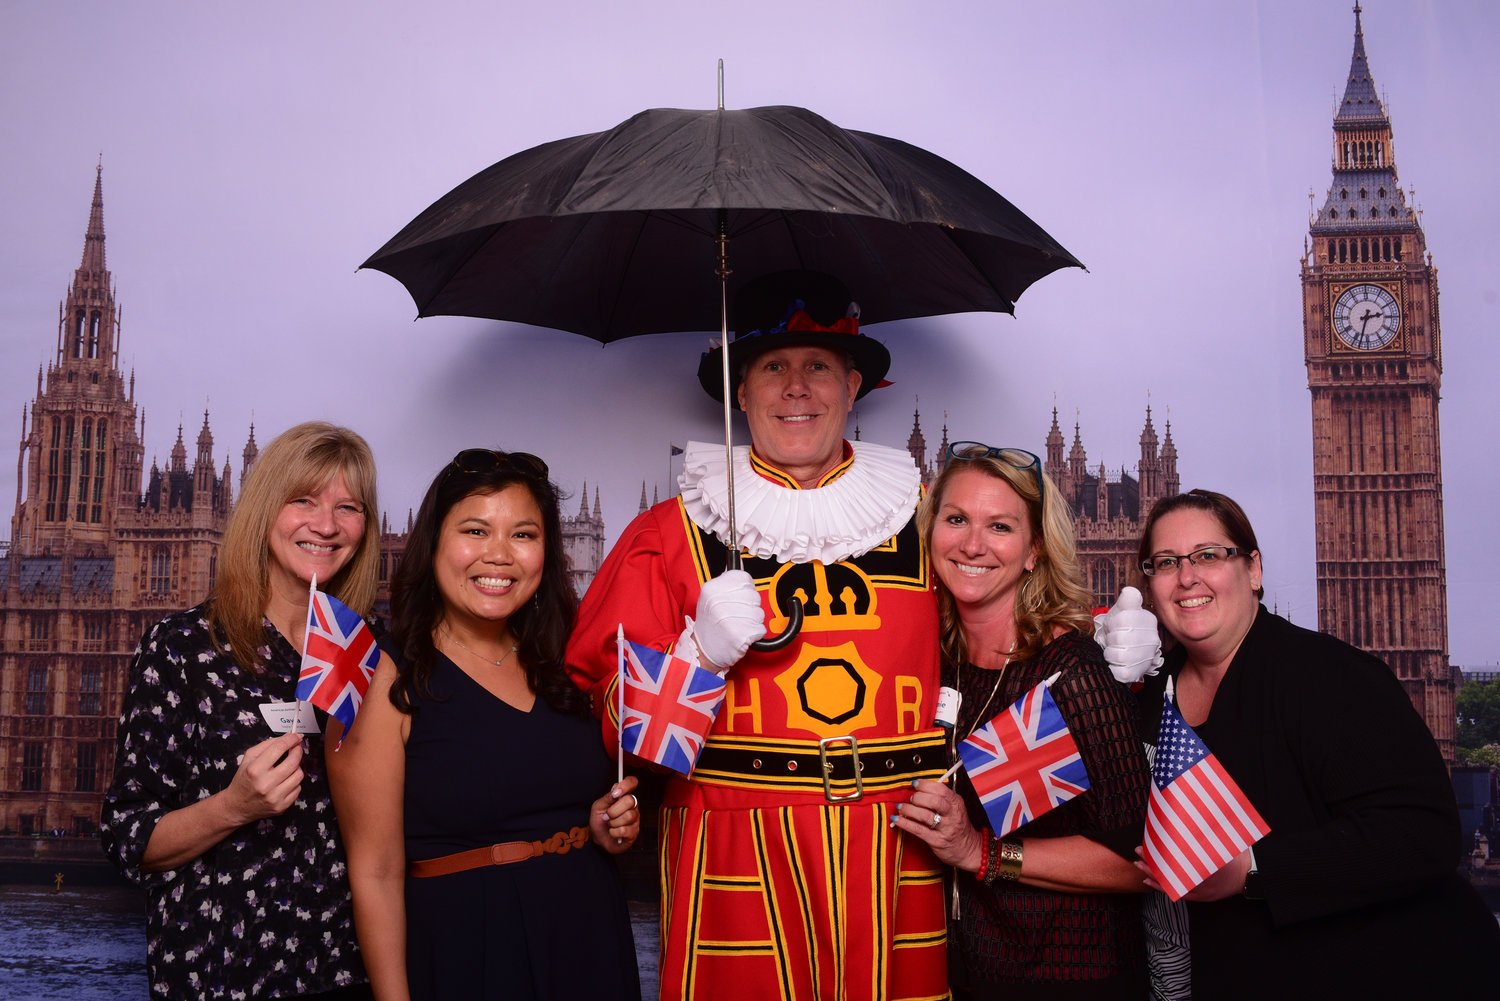 American Airlines celebrates launching a new nonstop flight to London.